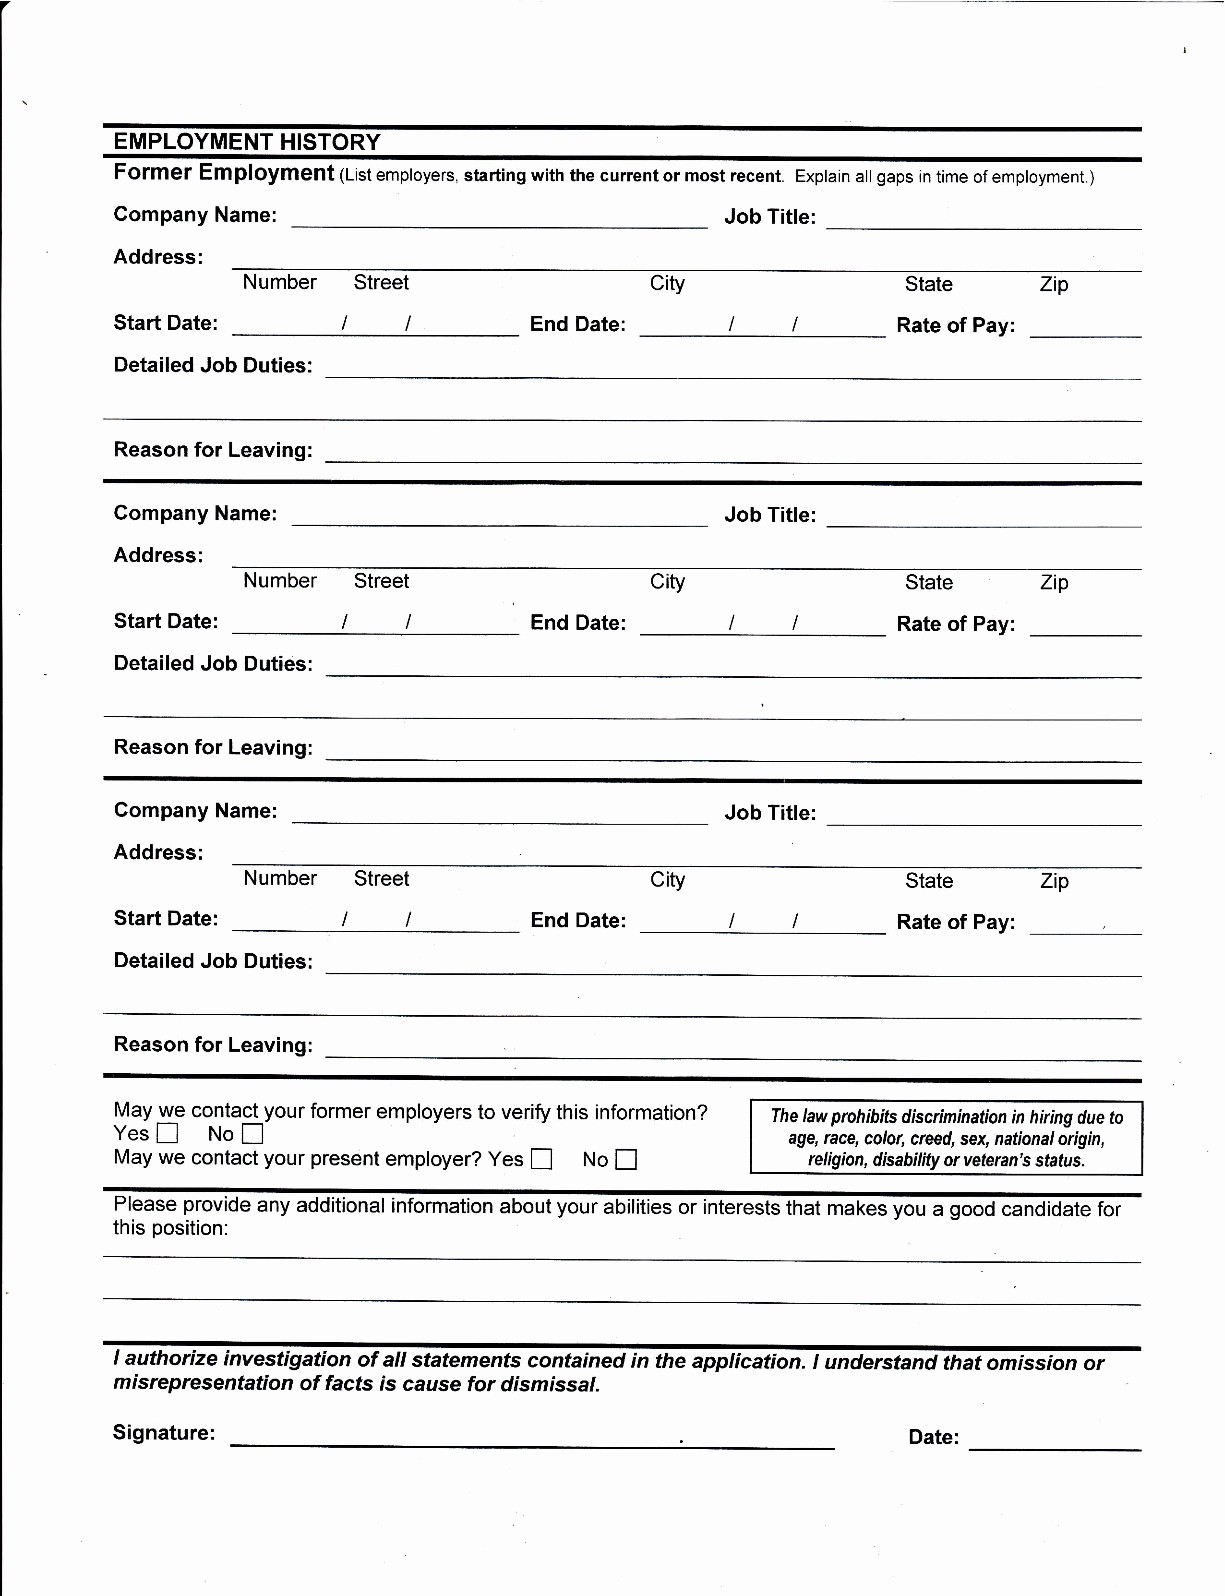 Generic Application for Employment form Inspirational America Do You Want to Work Printable Application